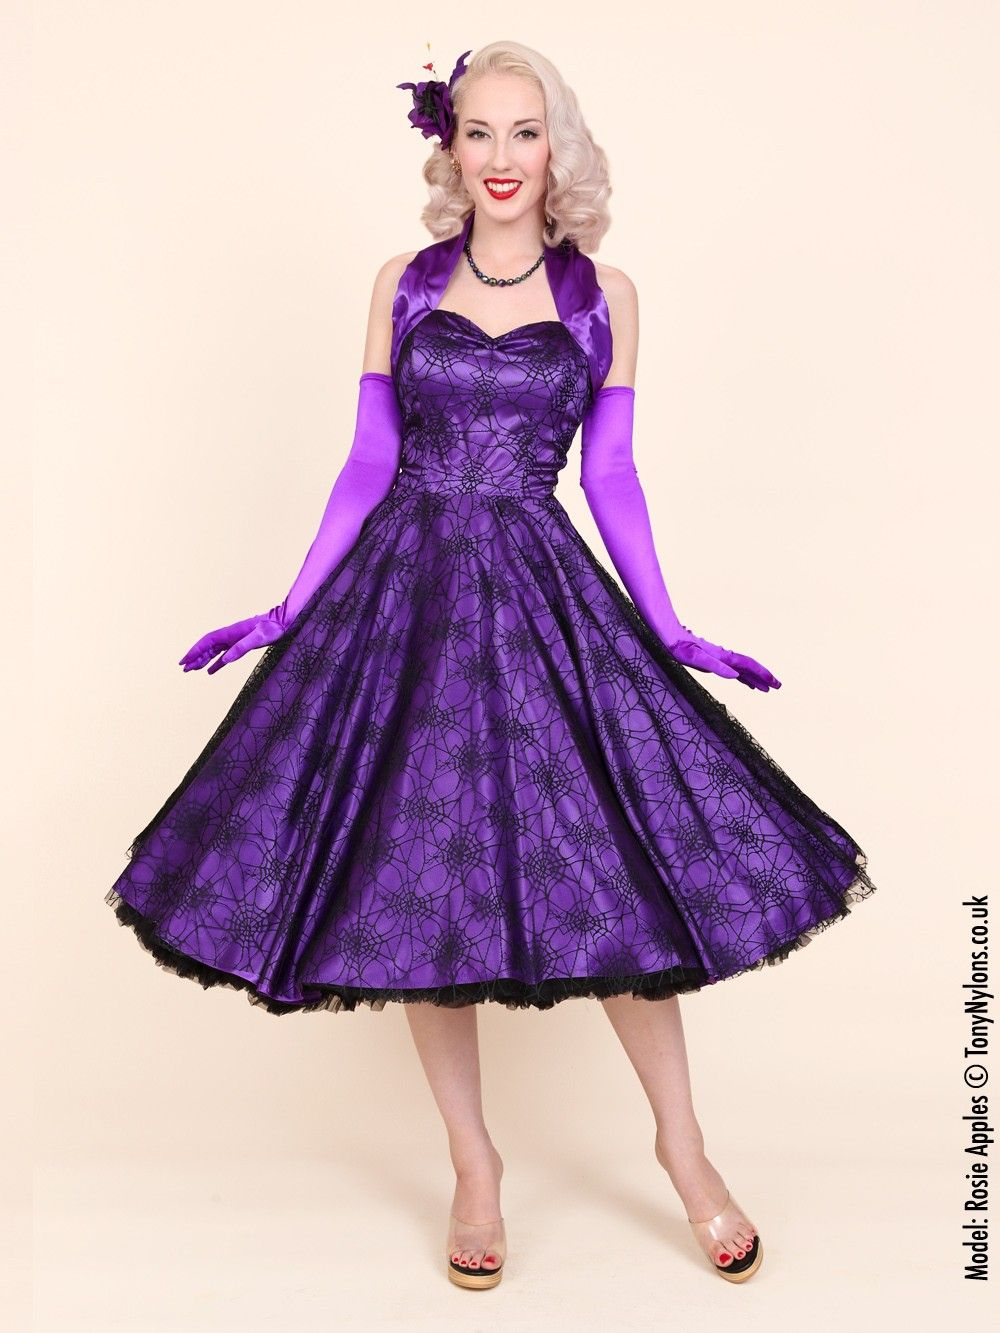 1950s Halterneck Luxury Purple Satin Spiderweb Dress | Trick or ...